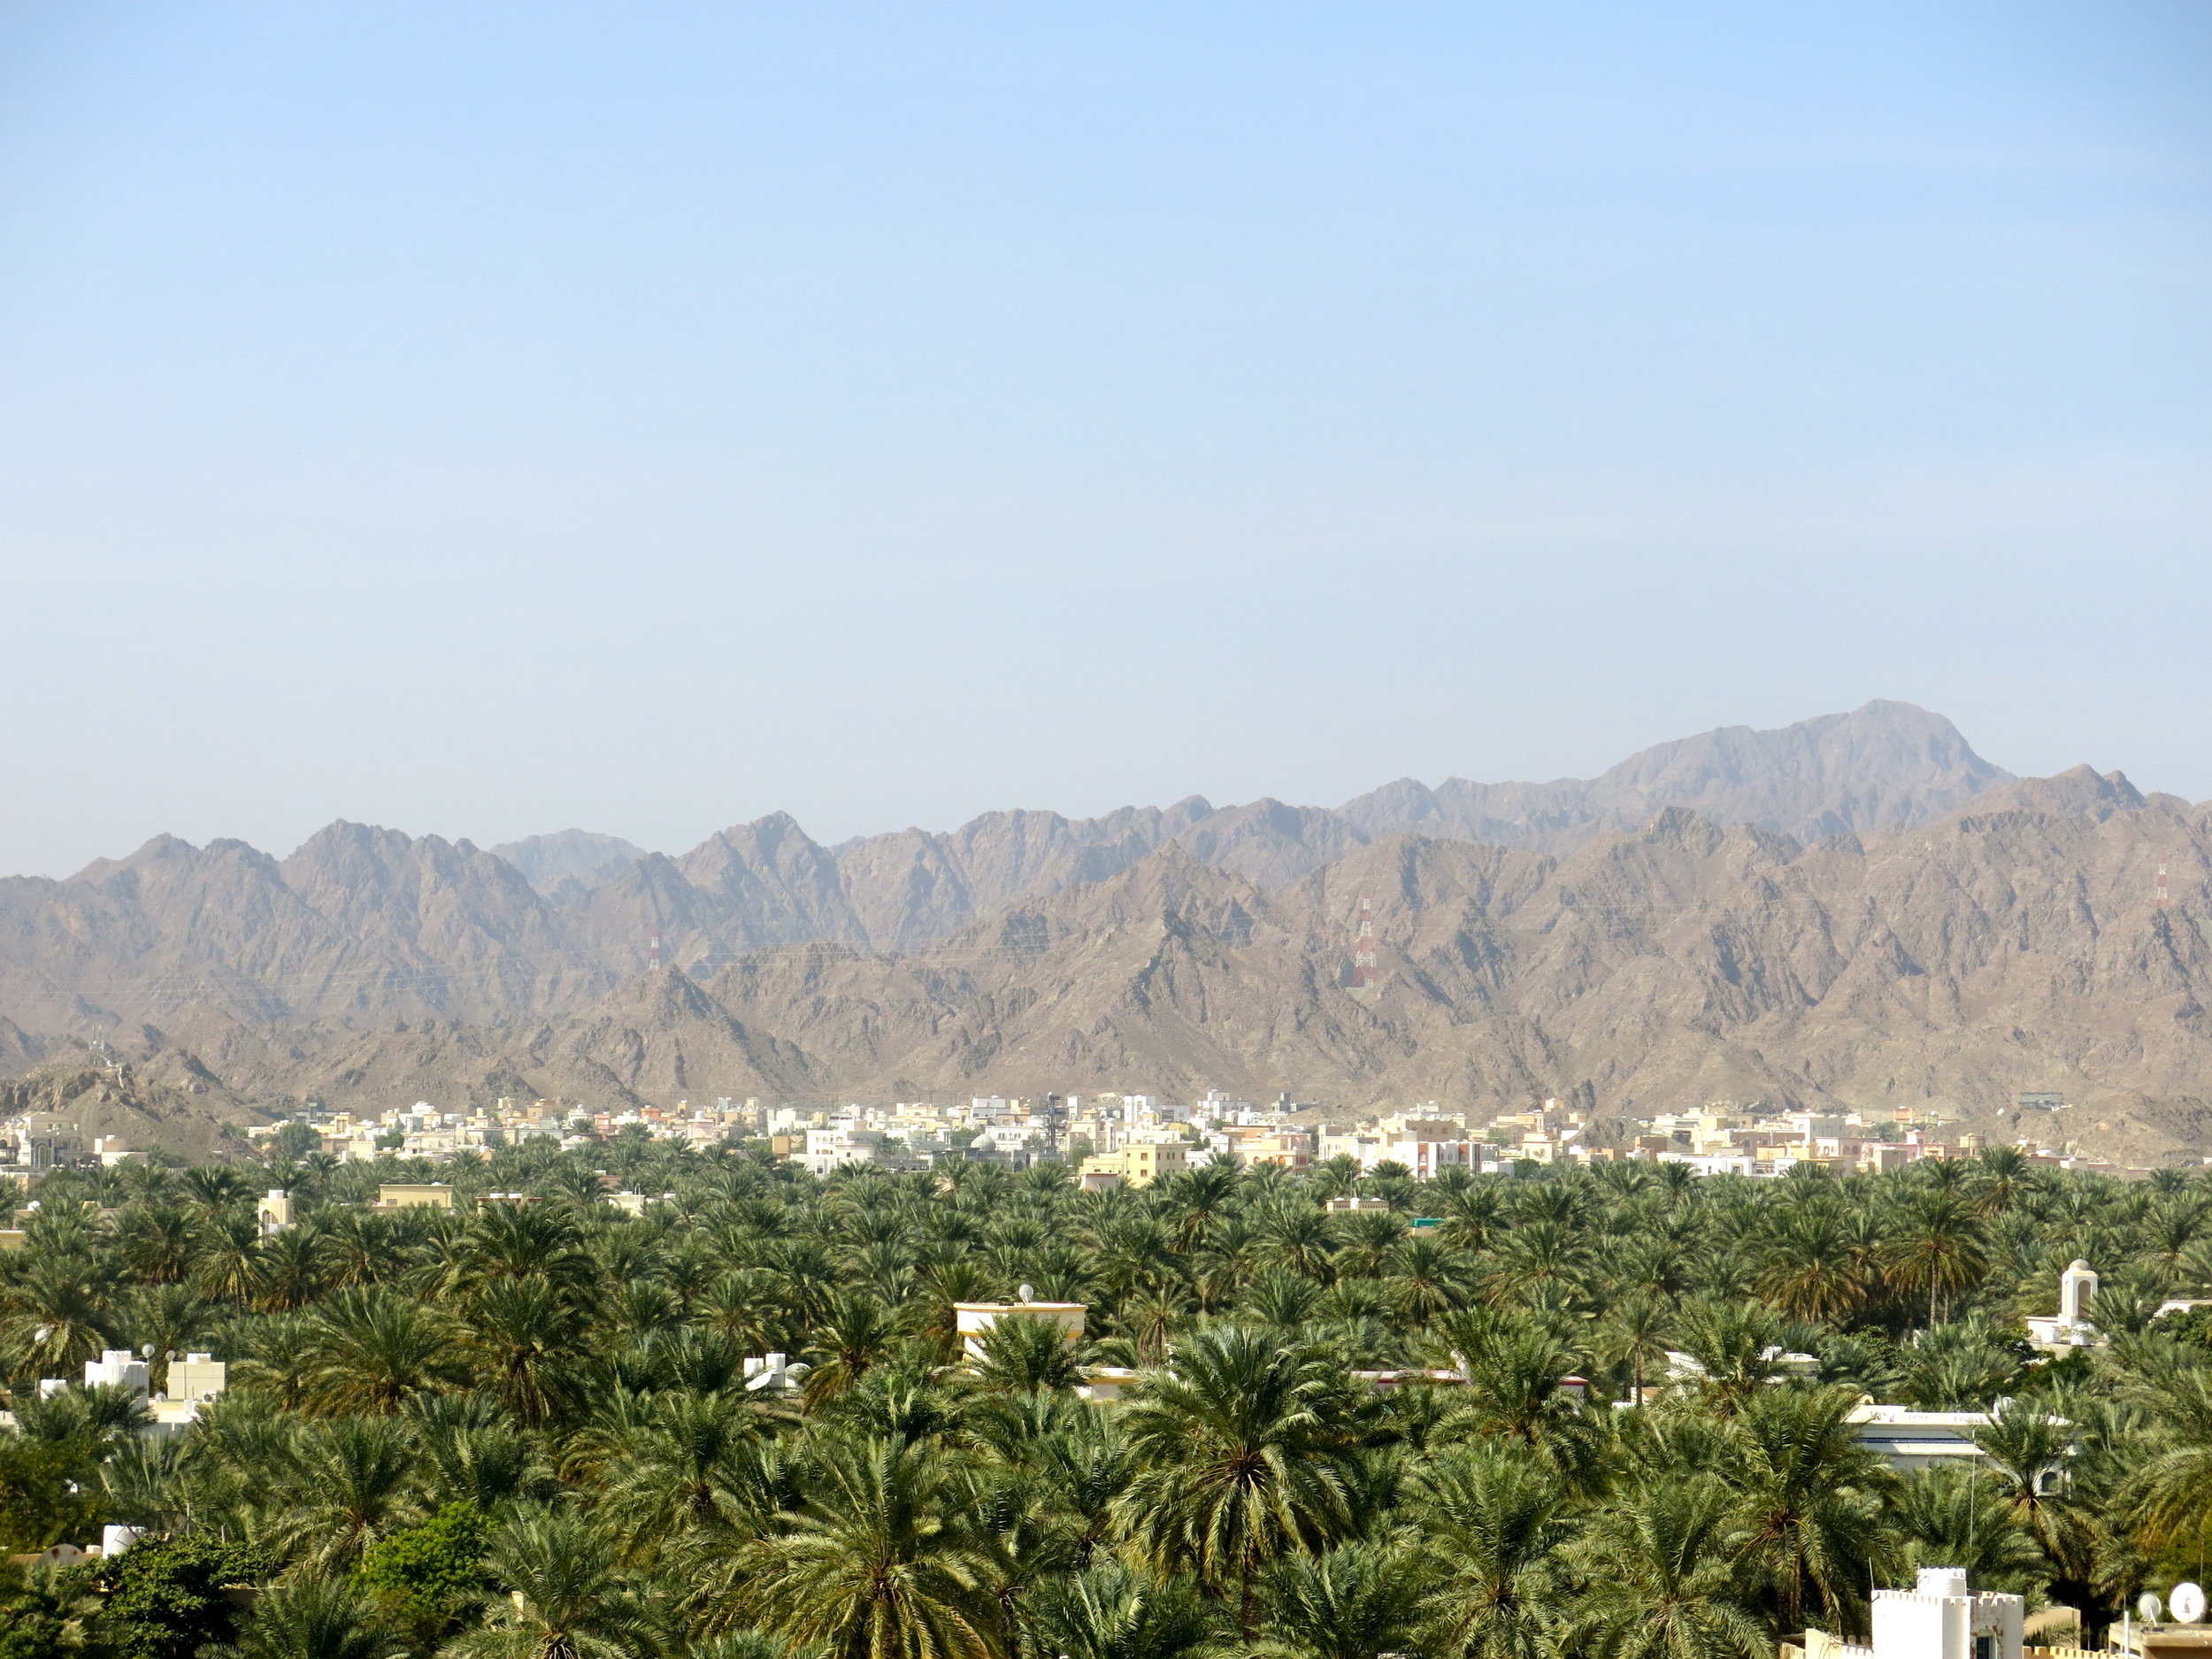 Panorama from the fortress with scores of date palm-trees